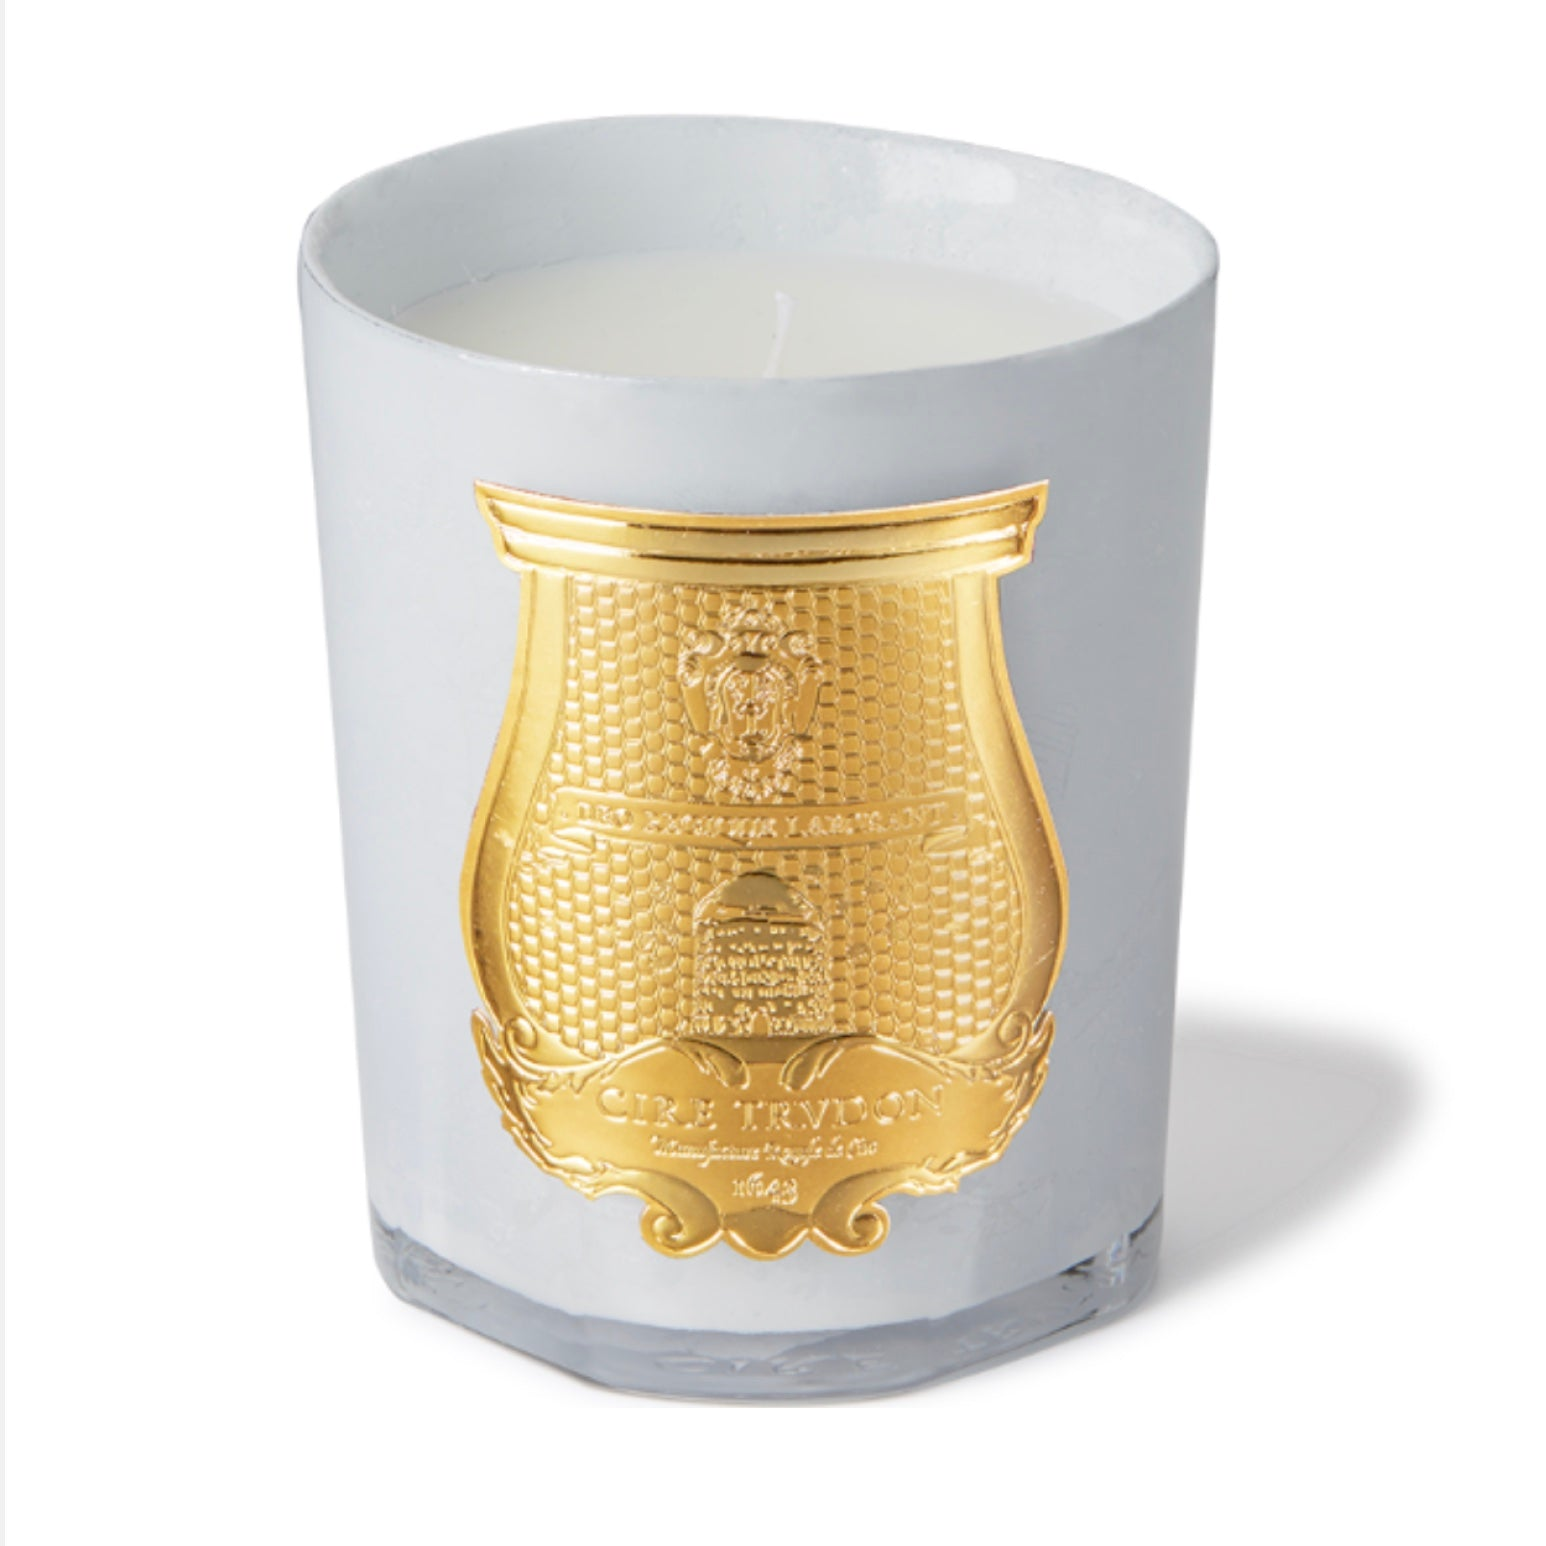 Cire Trudon Abd el Kader Metallic White Candle Holliday 2019 | Putti Canada